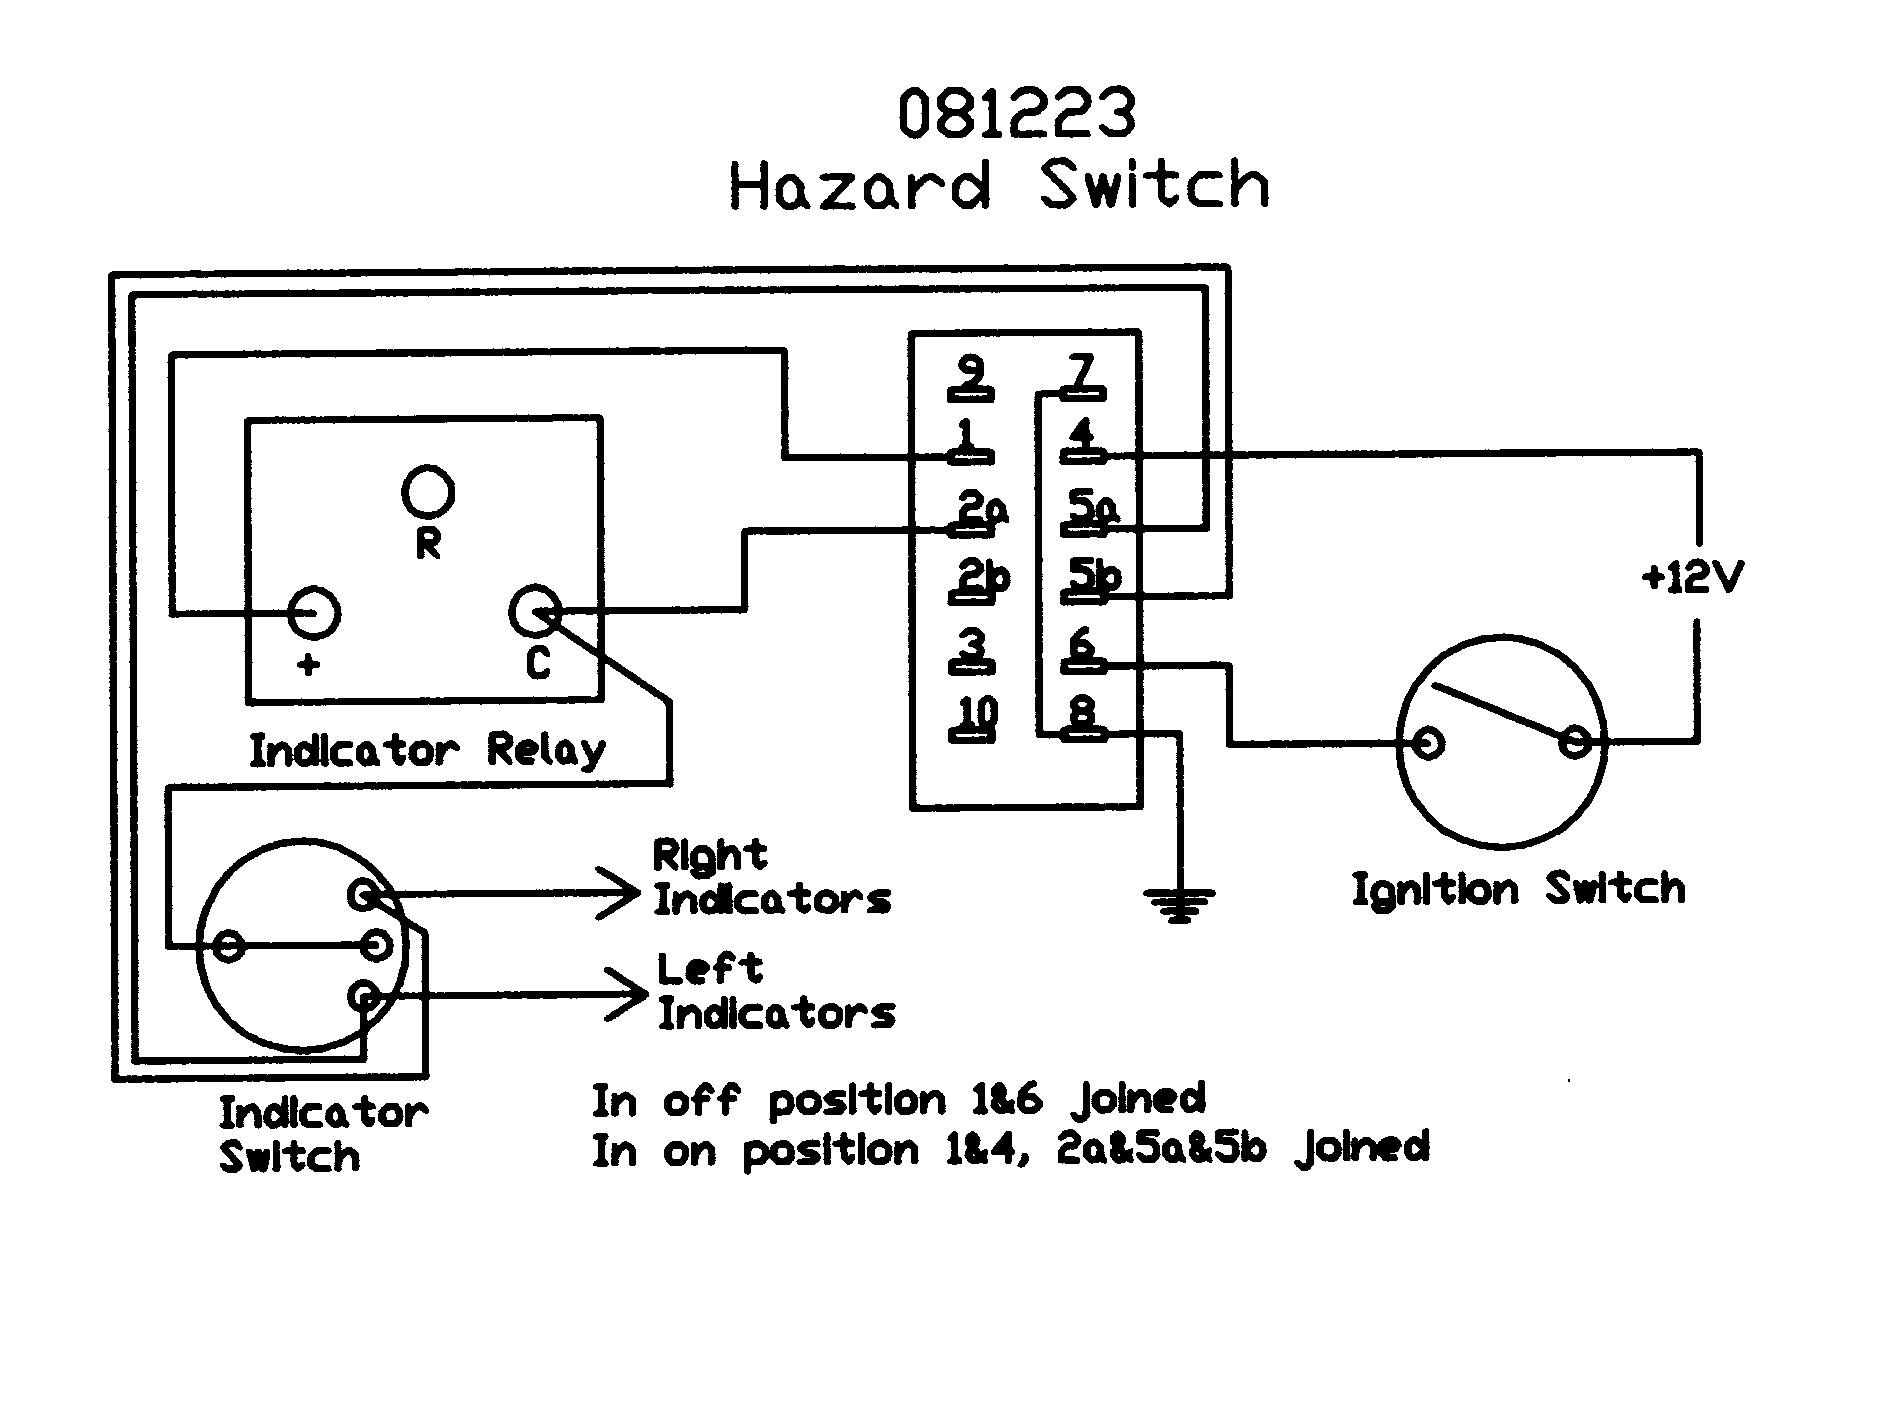 Light Switch Drawing At Free For Personal Use Wiring Diagram In Addition Christmas 3 Wire 524x720 Reversing On Lt77 1904x1424 Rocker Hazard